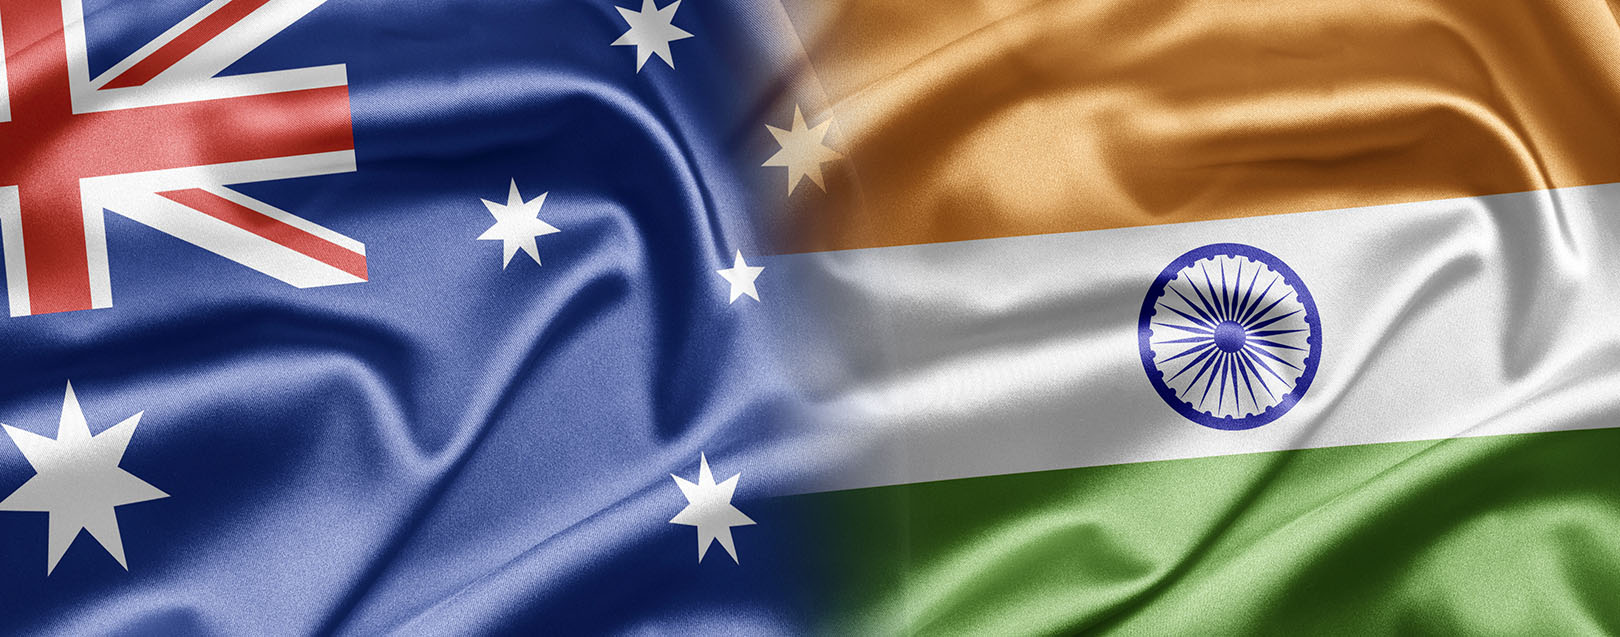 India, land of immense opportunity for Australia: Malcolm Turnbull